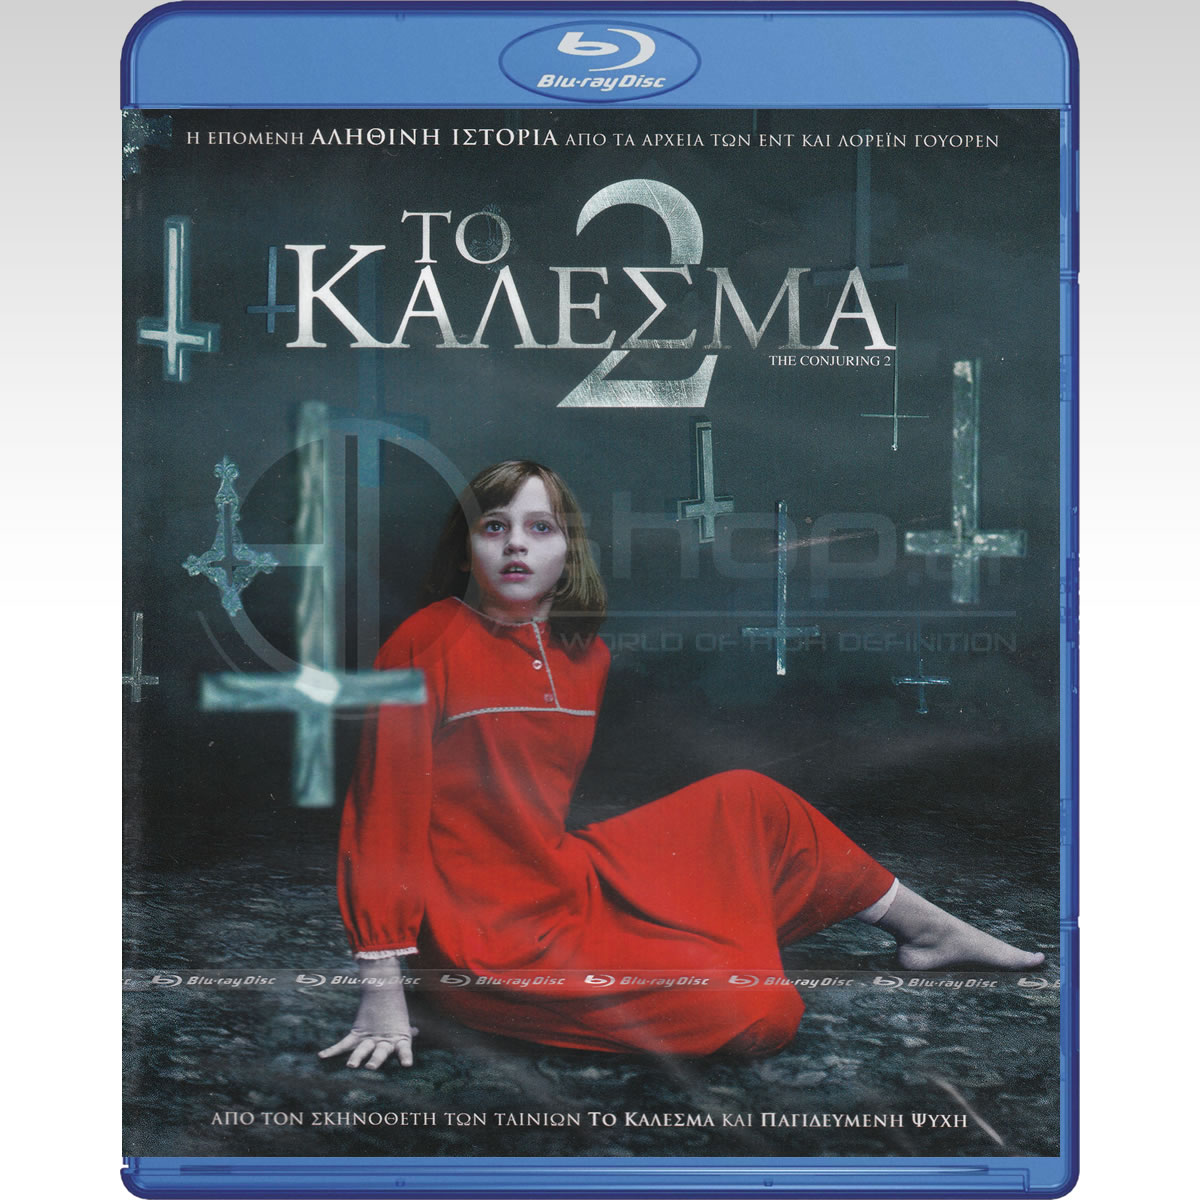 THE CONJURING 2 - ΤΟ ΚΑΛΕΣΜΑ 2 (BLU-RAY)